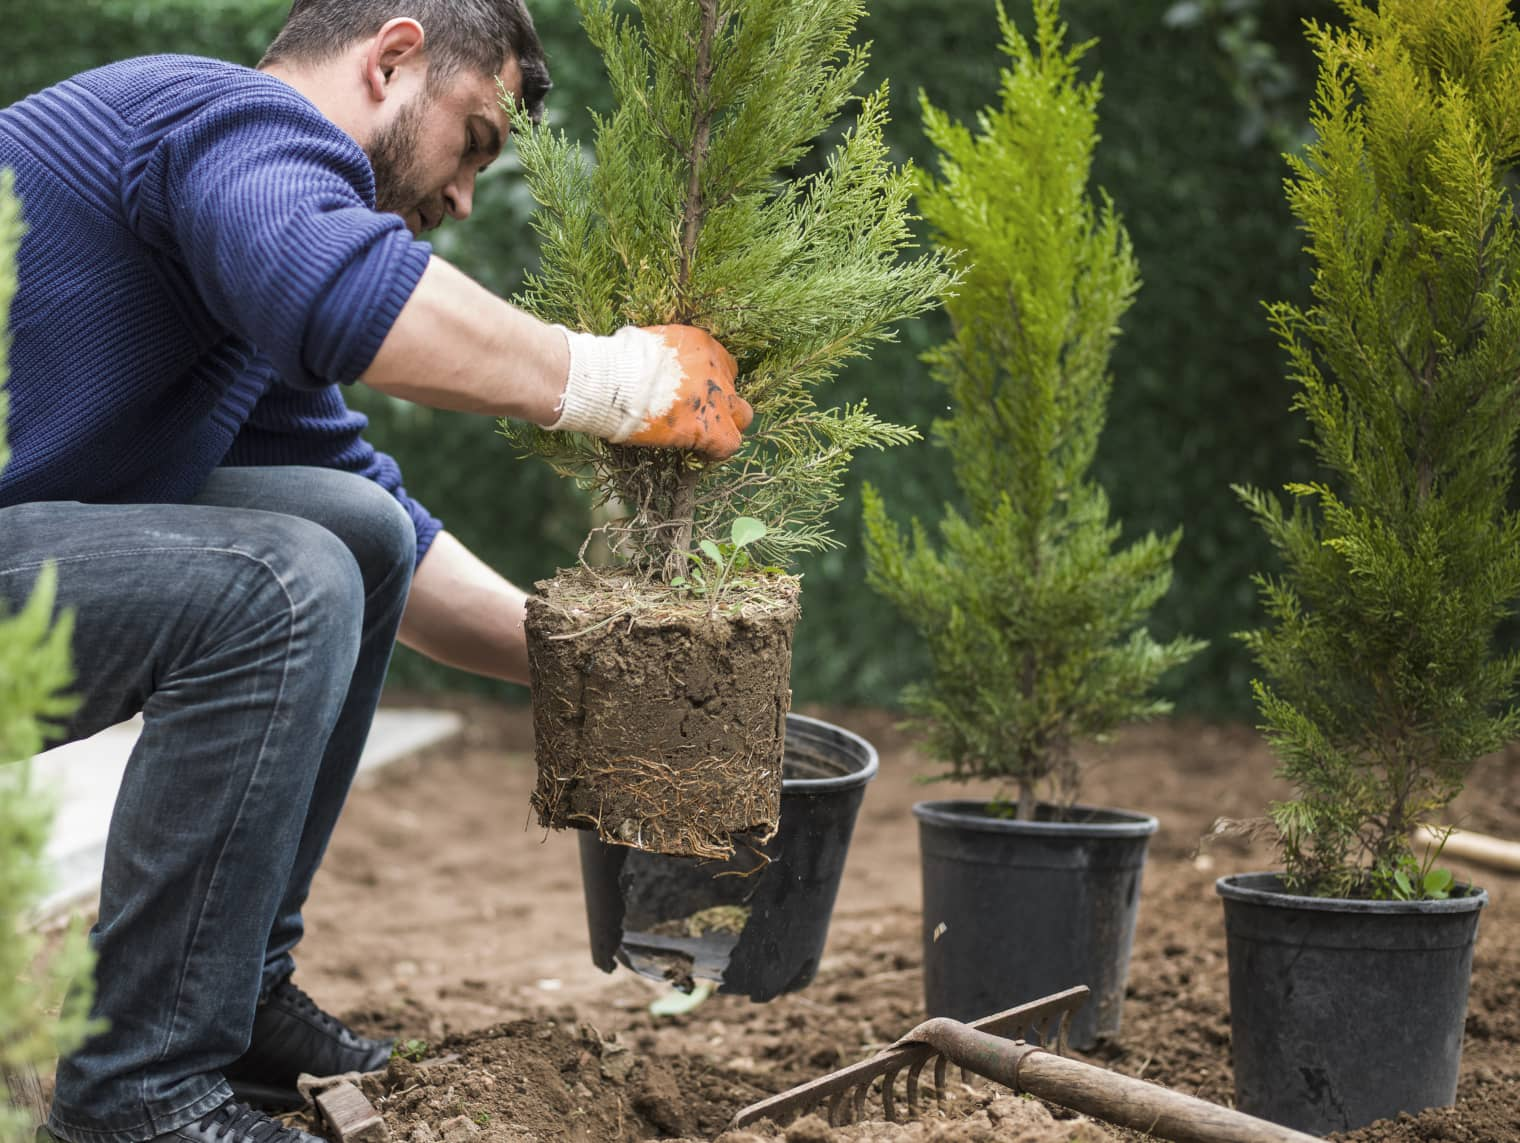 Close-up of a person planting a small tree; more trees can be seen in the background.